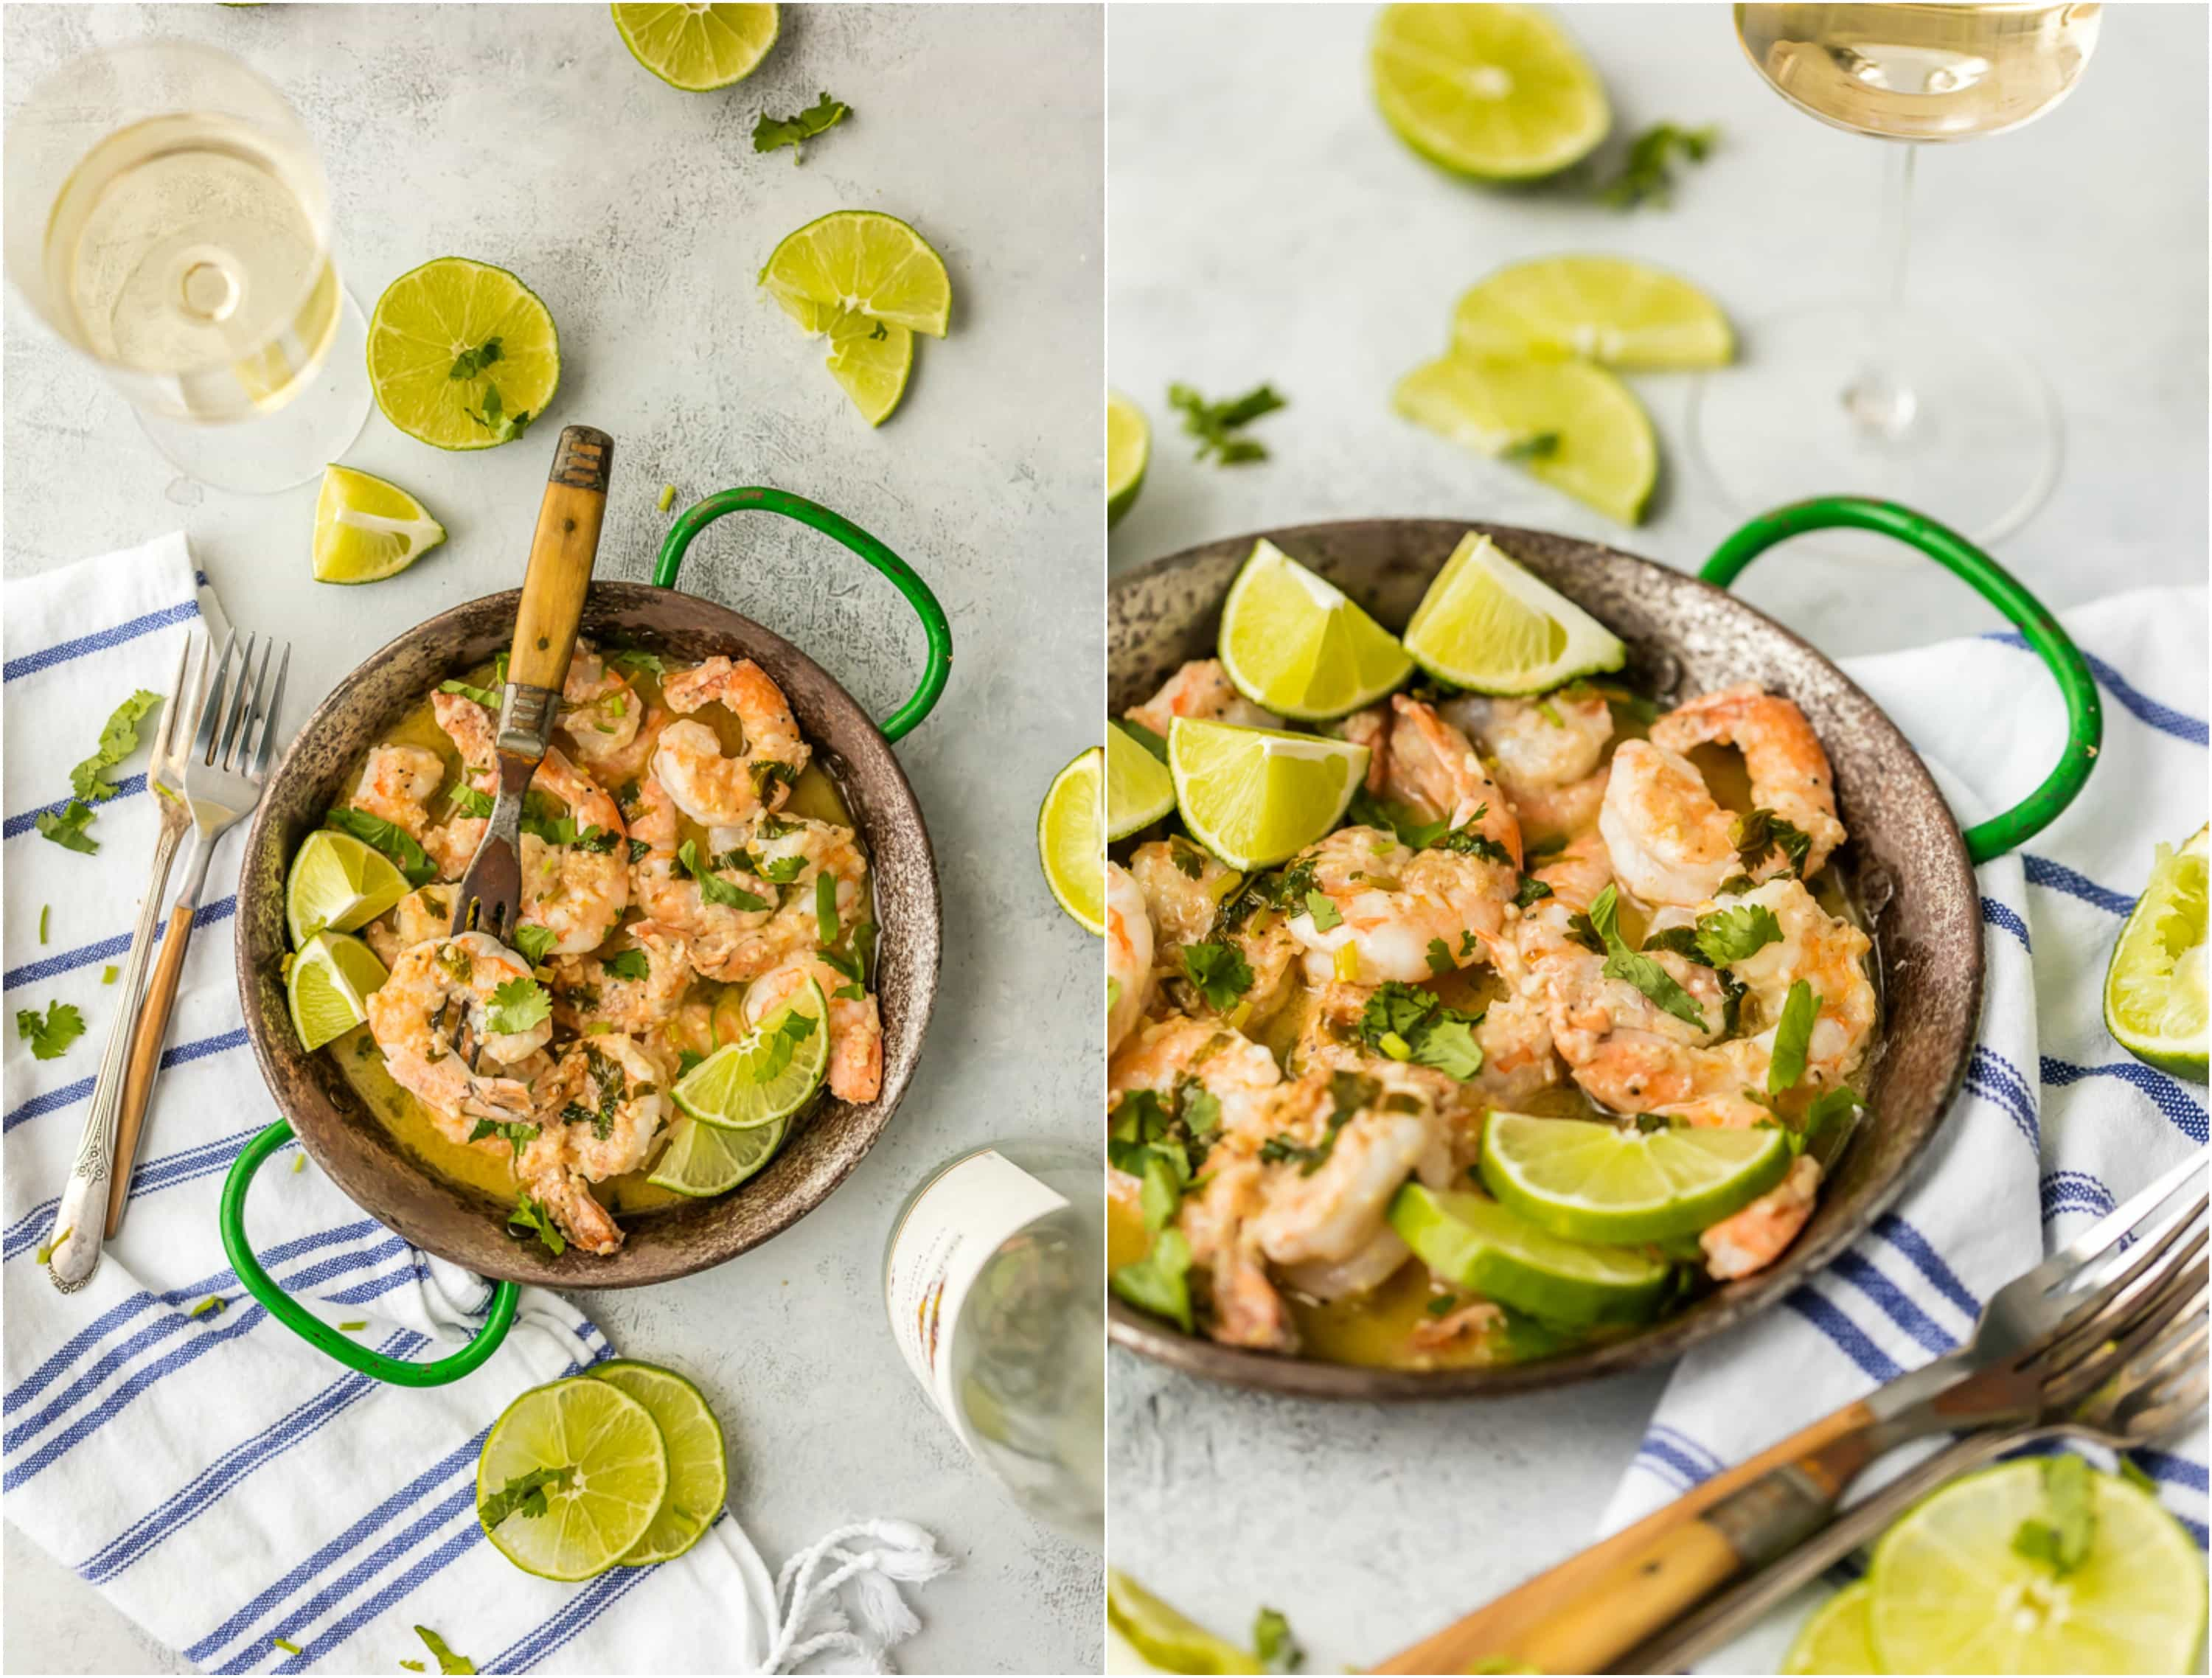 Make dinner (or appetizer night) easy with ONE POT CILANTRO LIME SHRIMP SCAMPI! The White Wine Garlic Butter Cilantro Lime Sauce is AMAZING! Made in 15 minutes. Perfection.